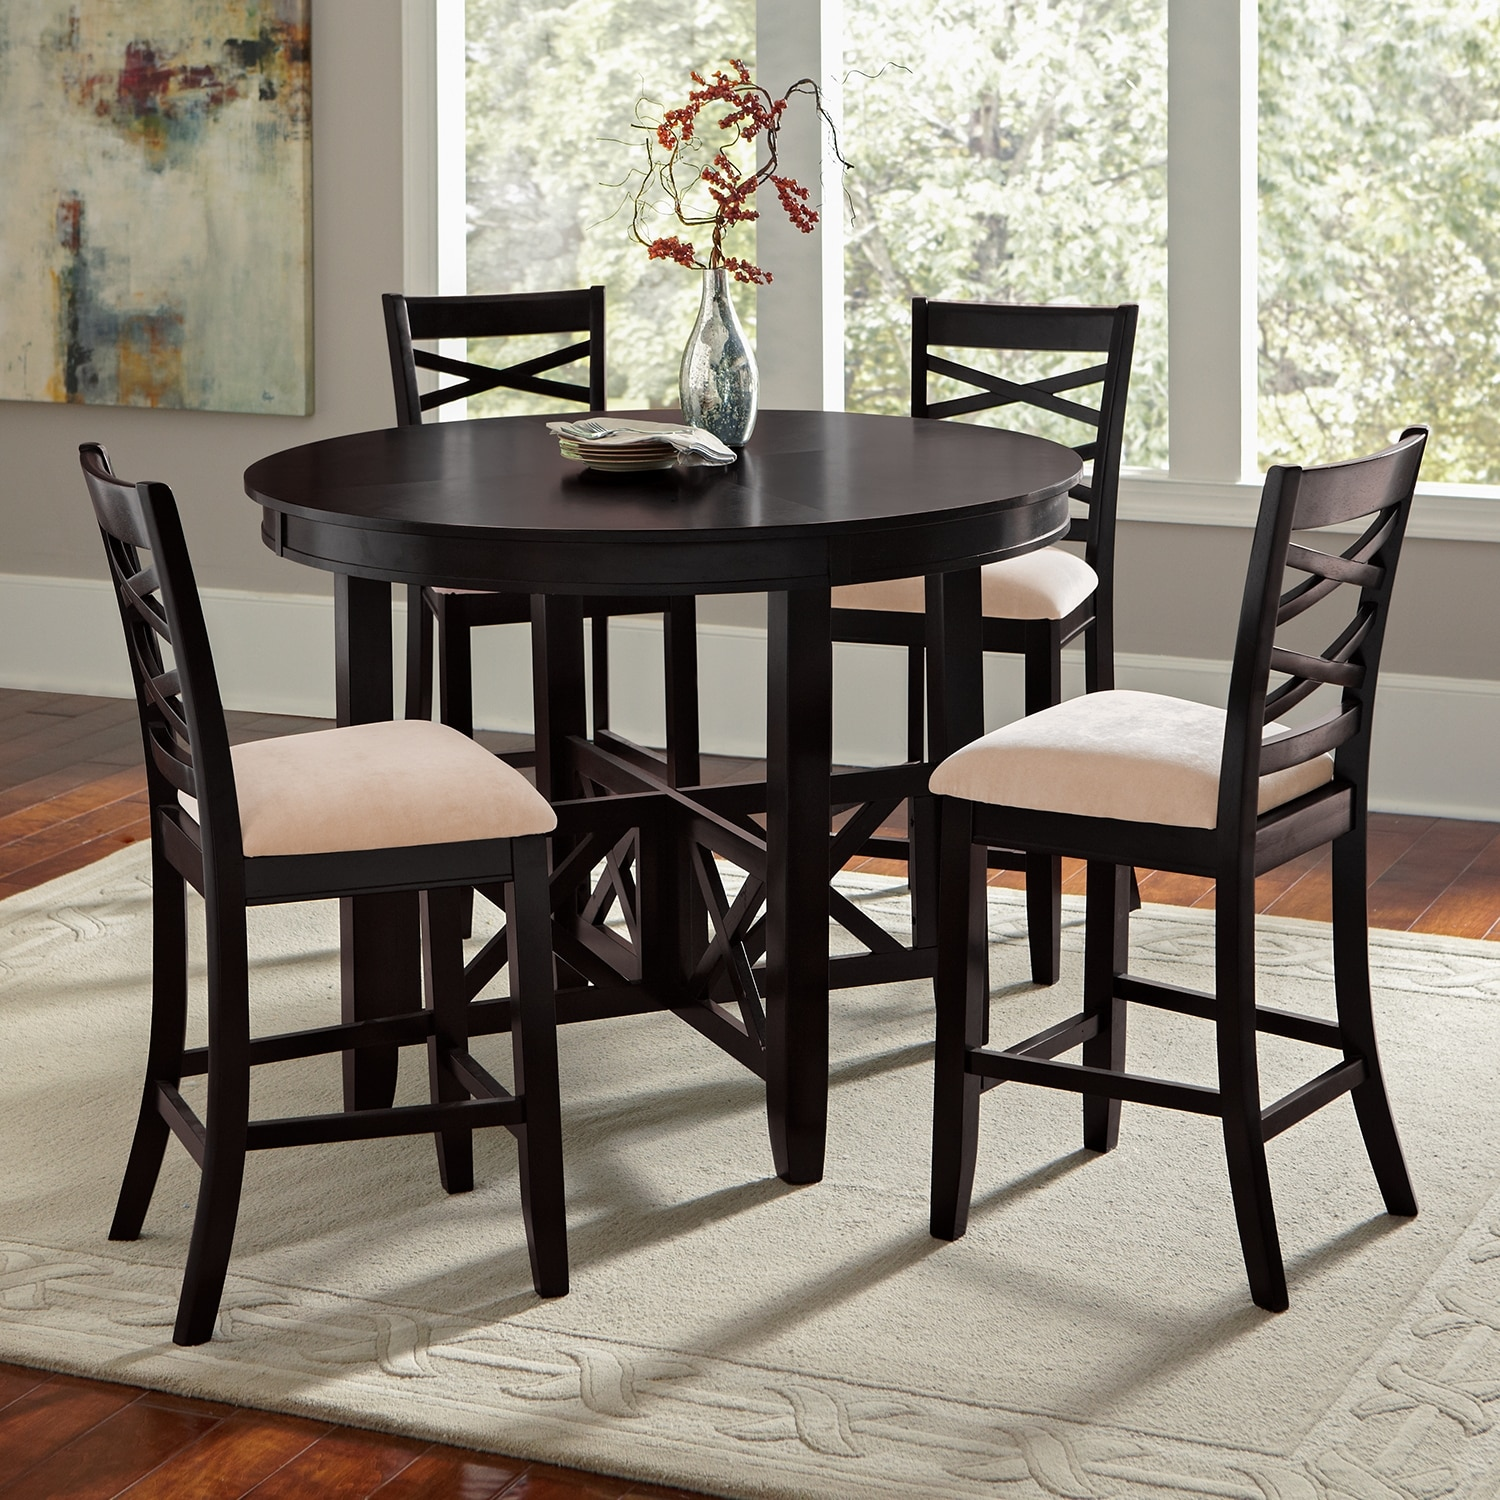 Americana Espresso Dining Room 5 Pc Counter Height